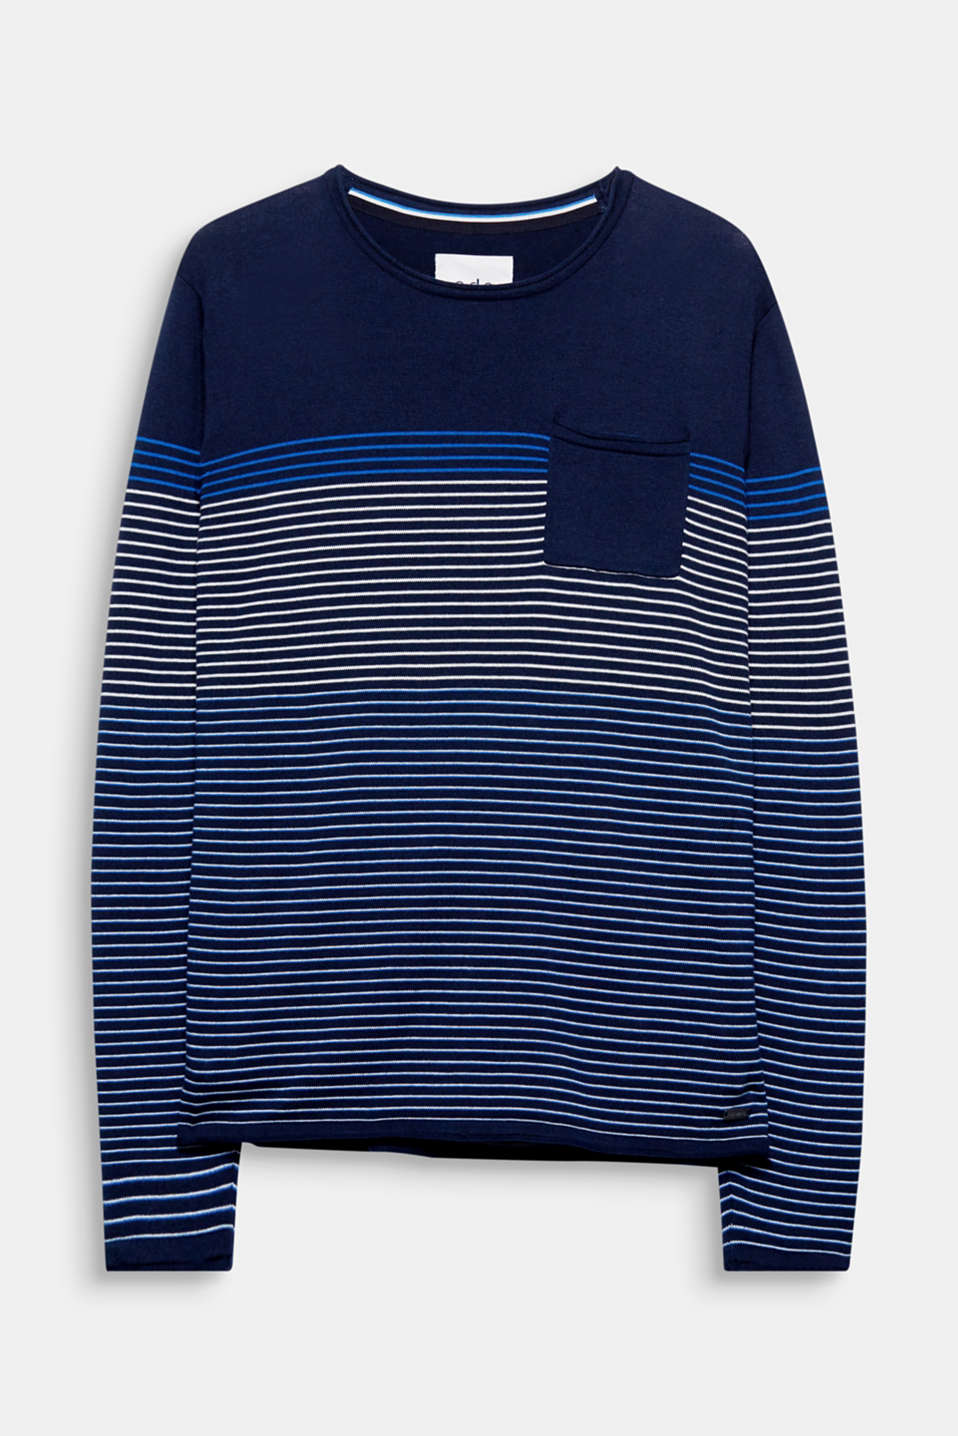 Fine stripes and casual rolled edges give this fine knit jumper its cool, sporty look.